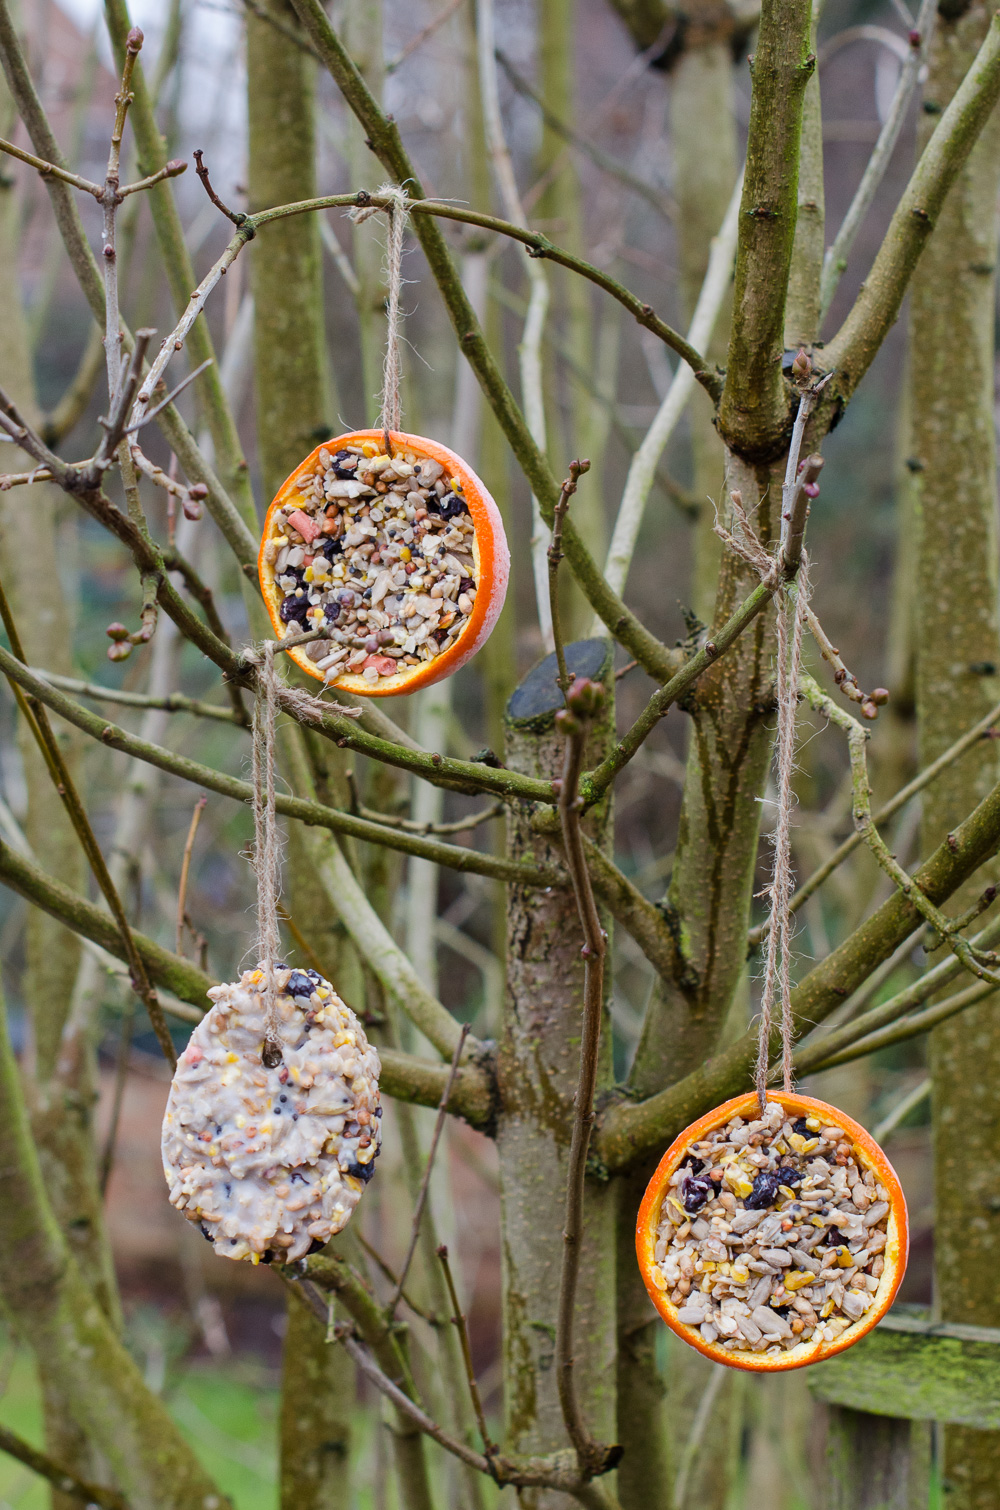 How to make fun bird feeders - Growing Family